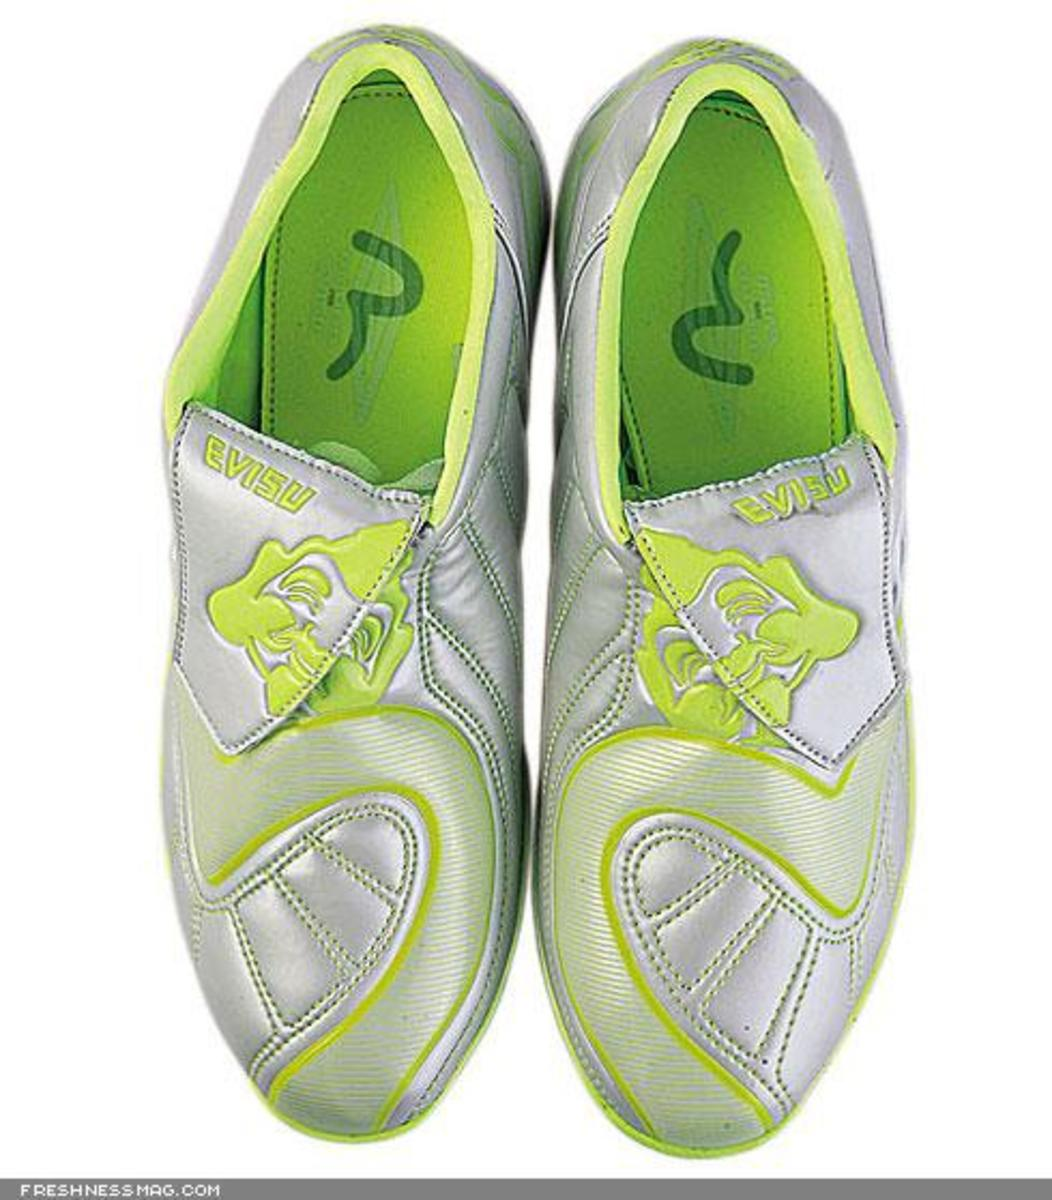 Evisu x Umbro - Soccer Shoes - 5